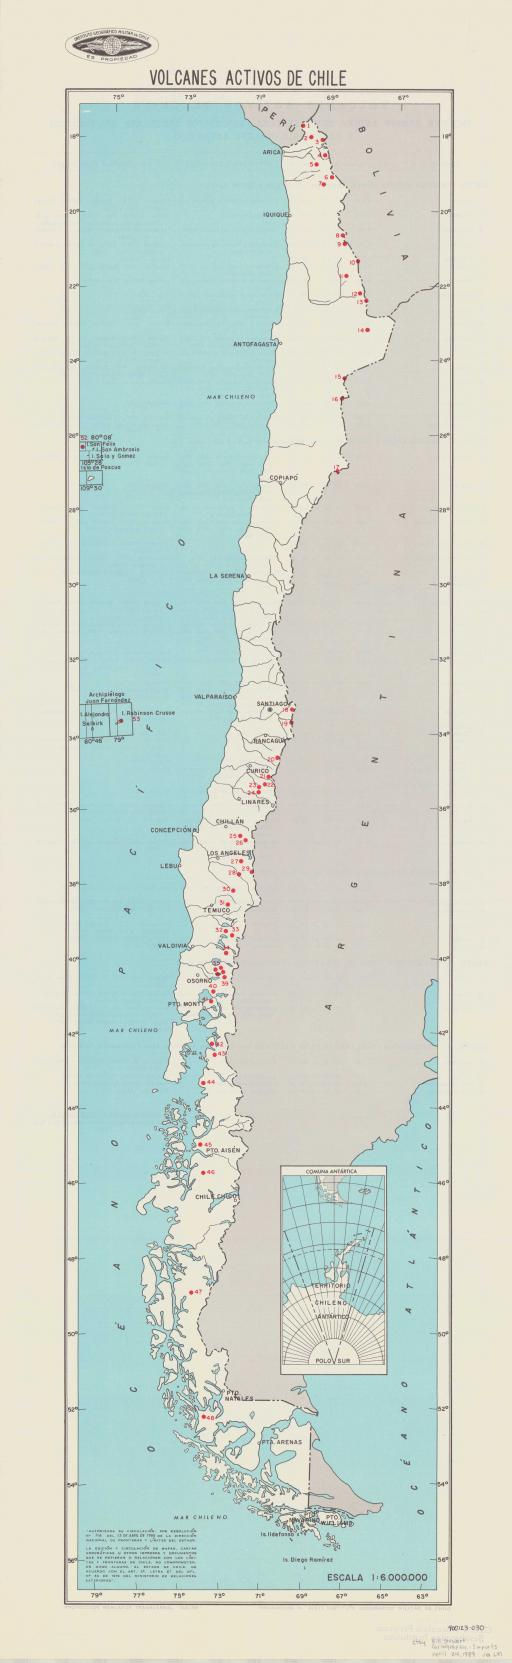 Map of Volcanes Activos de Chile